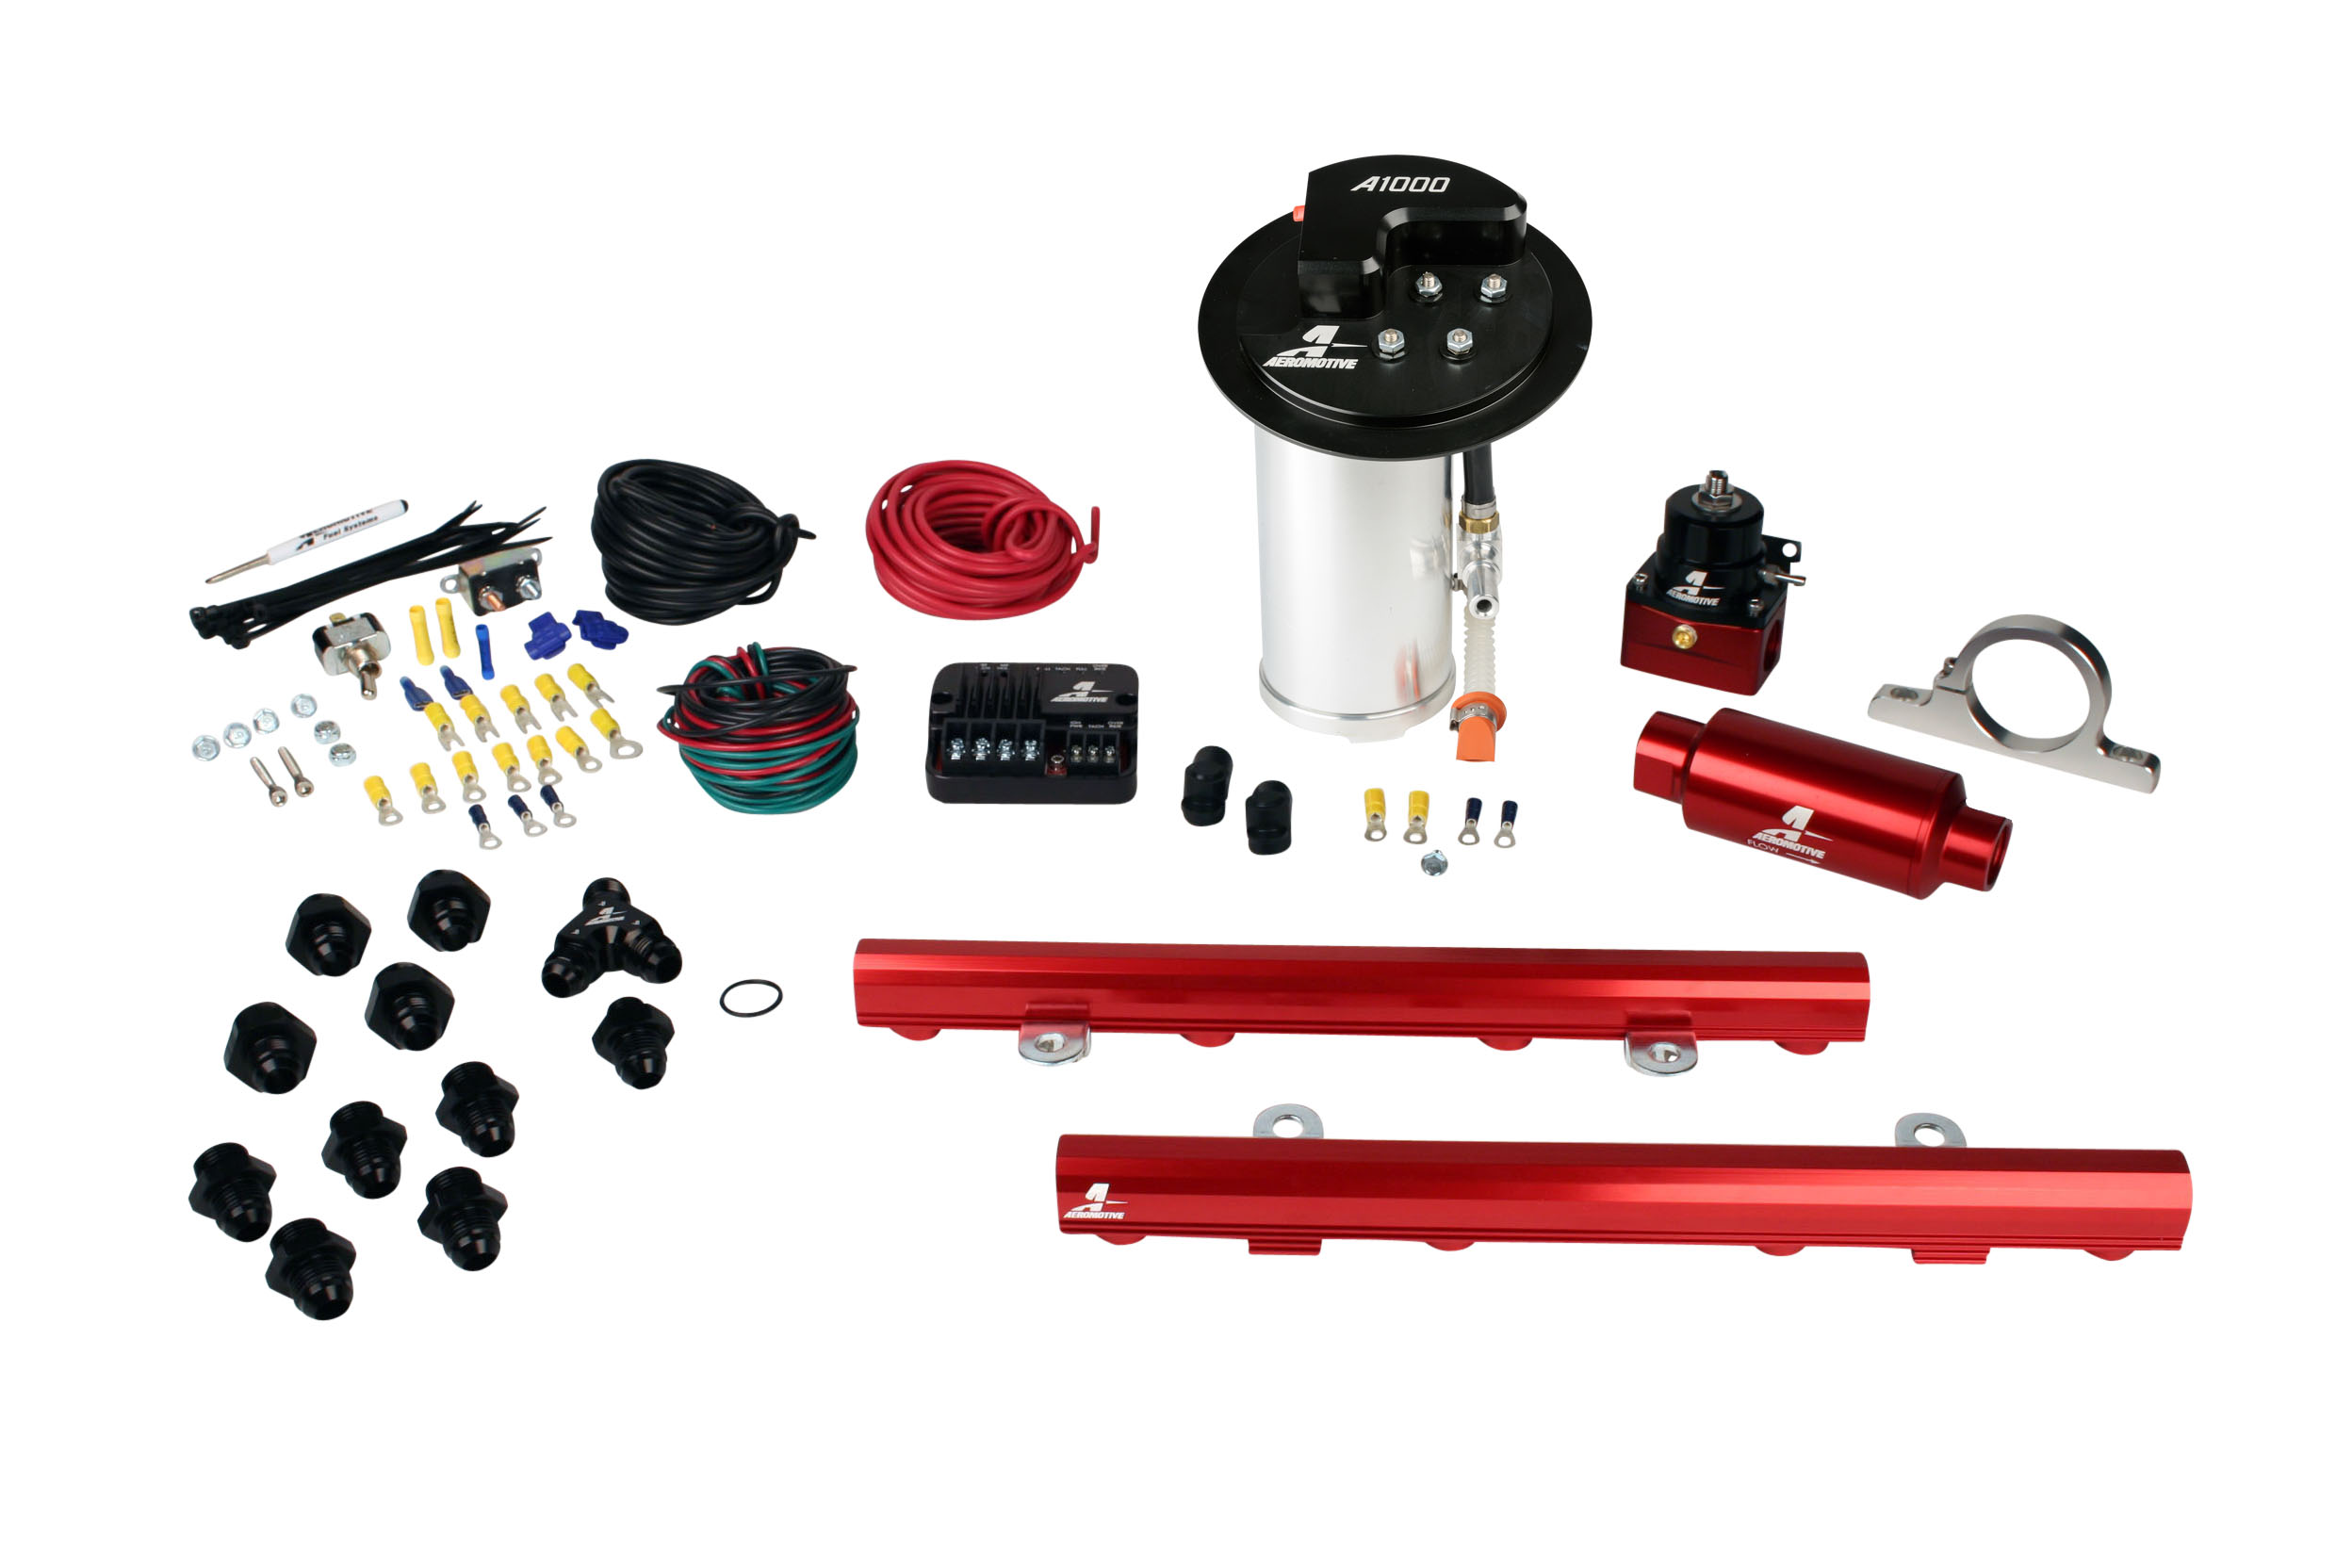 2010-2017 Ford Mustang GT Aeromotive Stealth A1000 Street Fuel System w/5.0L Coyote 4 Valve Fuel Rail